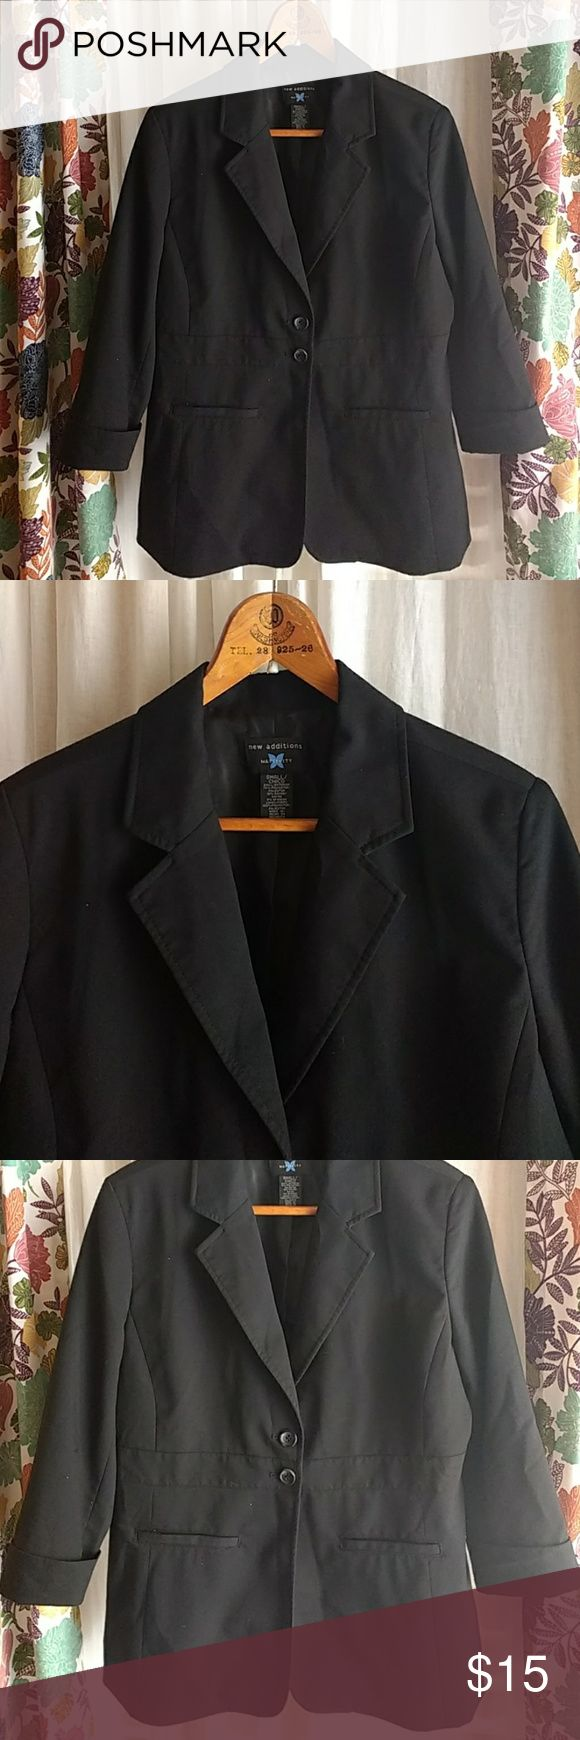 New additions maternity blazer jacket coat black New additions maternity blazer jacket coat black   Thanks for looking!! Item is sold as-is, no refunds. Please review photos carefully. Please feel free to ask questions! new additions Jackets & Coats Blazers